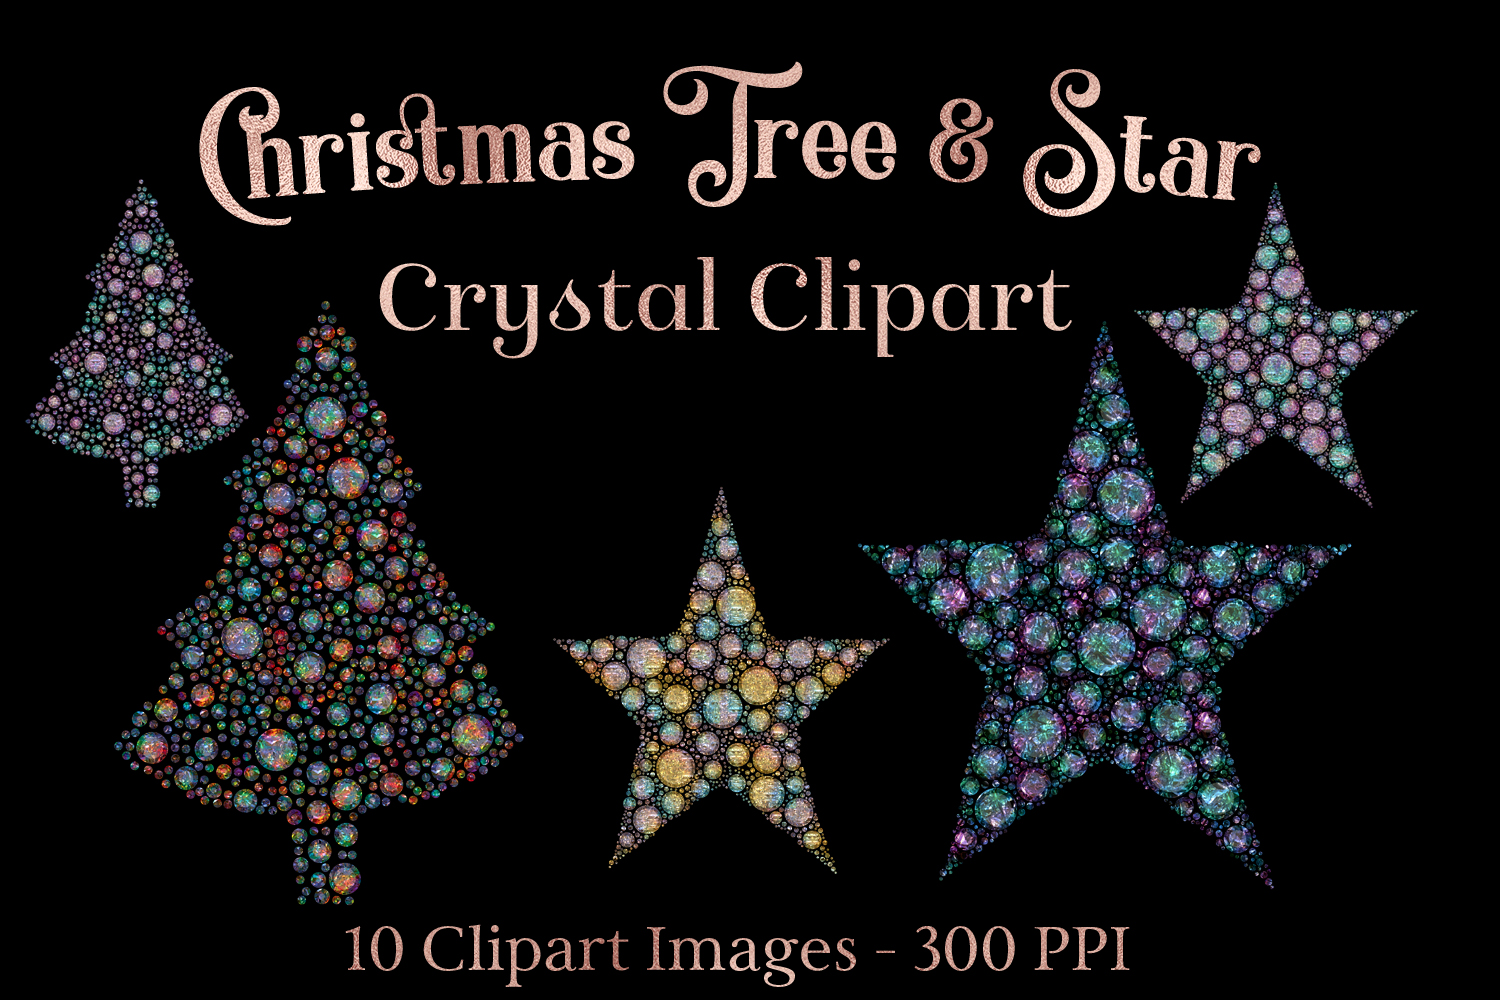 Christmas Tree and Star Crystal Clipart example image 1